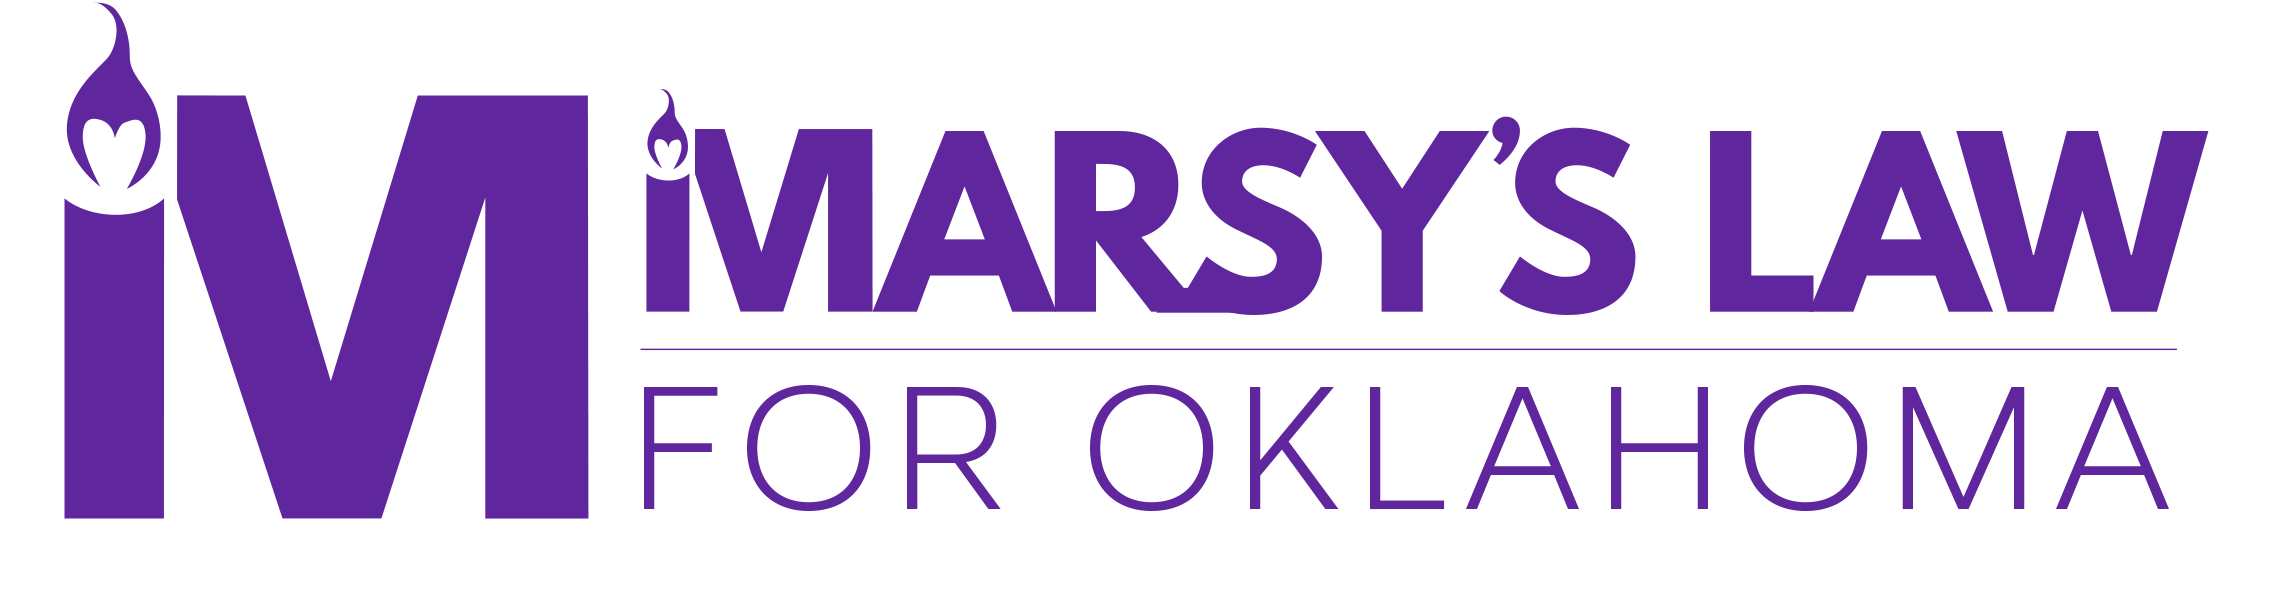 Marsy's Law for Oklahoma